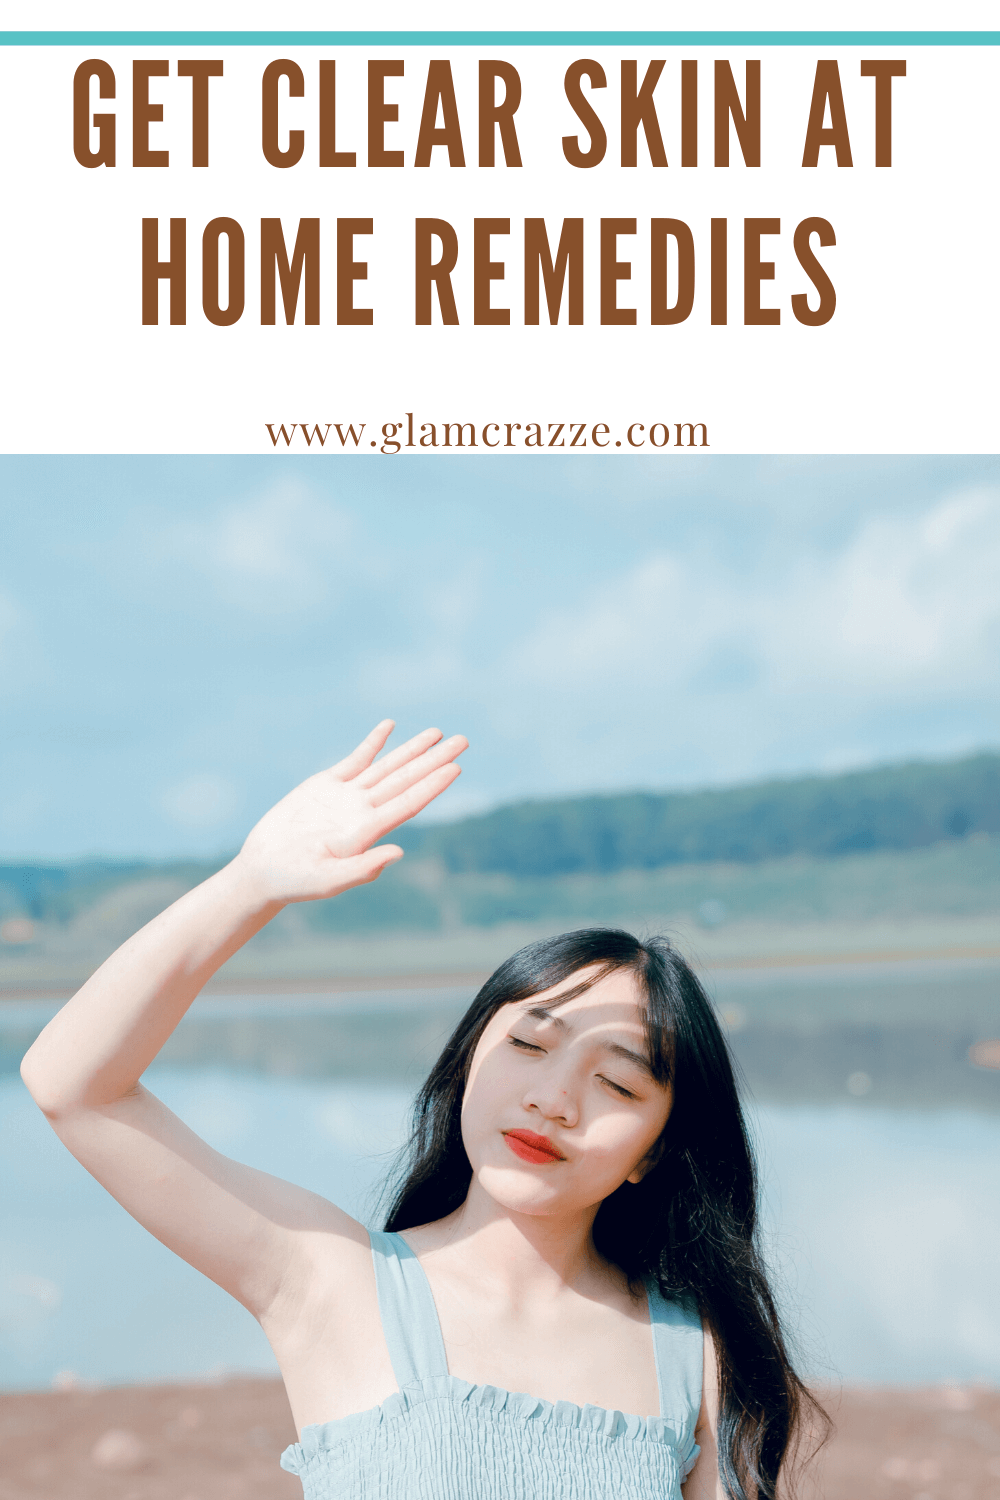 Get clear skin at home remedies